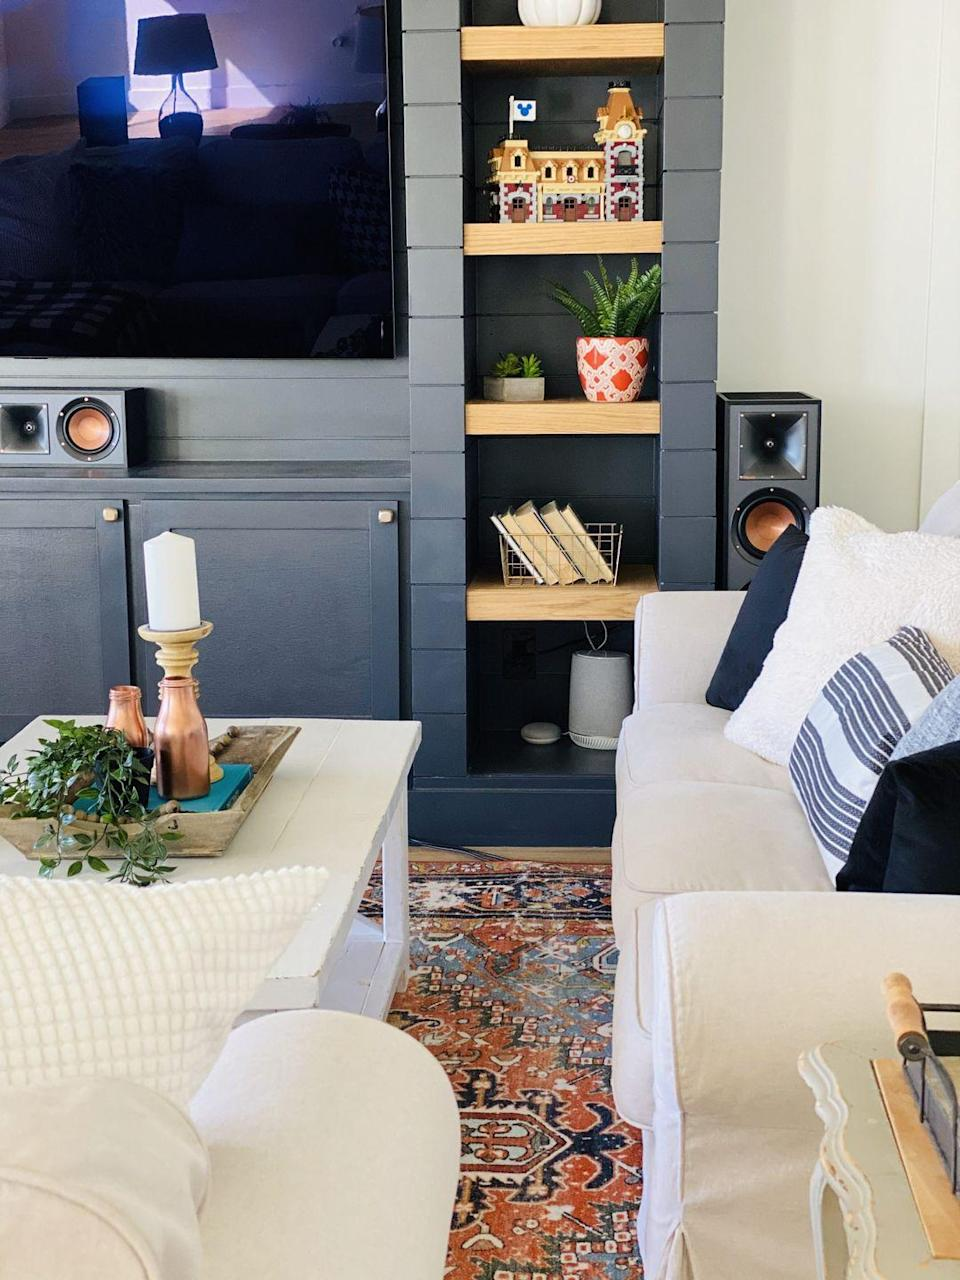 "<p>A built-in shiplap media unit? Yes, please! This stunning piece serves as the focal point of this modern media room, and offers plenty of shelf space for decor and books. </p><p><strong>See more at <a href=""https://www.honeybearlane.com/2020/10/modern-finished-basement-living-room-reveal.html"" rel=""nofollow noopener"" target=""_blank"" data-ylk=""slk:Honeybear Lane"" class=""link rapid-noclick-resp"">Honeybear Lane</a>. </strong></p><p><a class=""link rapid-noclick-resp"" href=""https://go.redirectingat.com?id=74968X1596630&url=https%3A%2F%2Fwww.walmart.com%2Fip%2FBetter-Homes-Gardens-White-Wood-Planter-with-20-Green-Yellow-Faux-Snake-Plant%2F627080921&sref=https%3A%2F%2Fwww.thepioneerwoman.com%2Fhome-lifestyle%2Fdecorating-ideas%2Fg34763691%2Fbasement-ideas%2F"" rel=""nofollow noopener"" target=""_blank"" data-ylk=""slk:SHOP FAUX PLANTS"">SHOP FAUX PLANTS</a></p>"